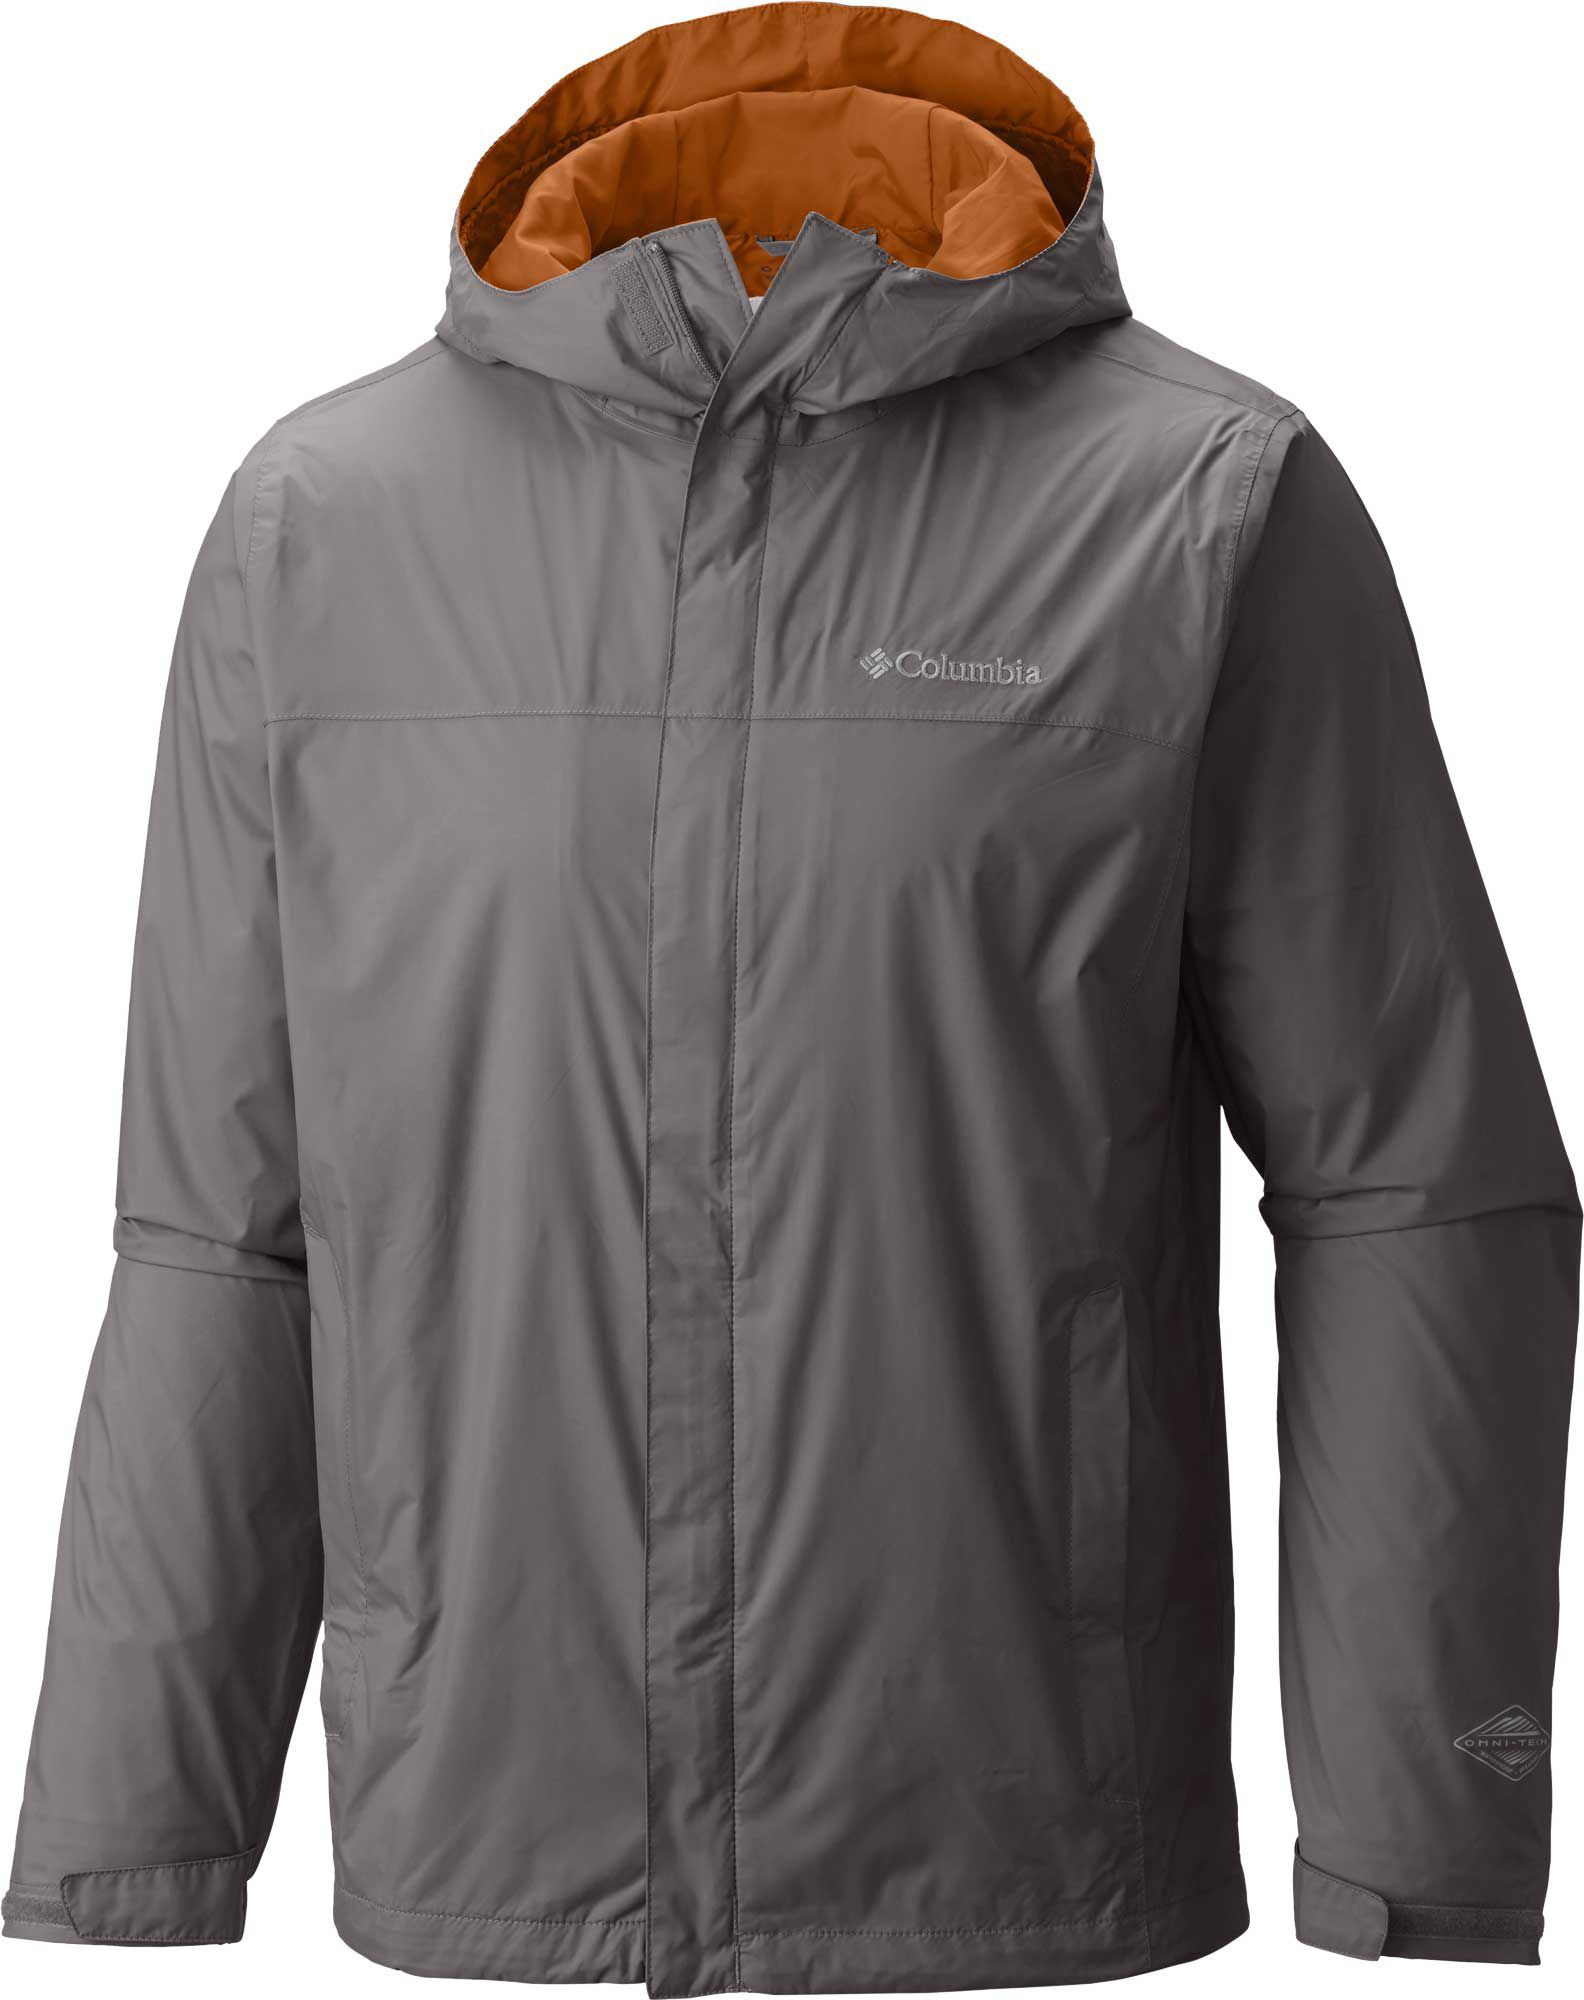 mens winter coats product image · columbia menu0027s watertight ii rain jacket QOTXSWC